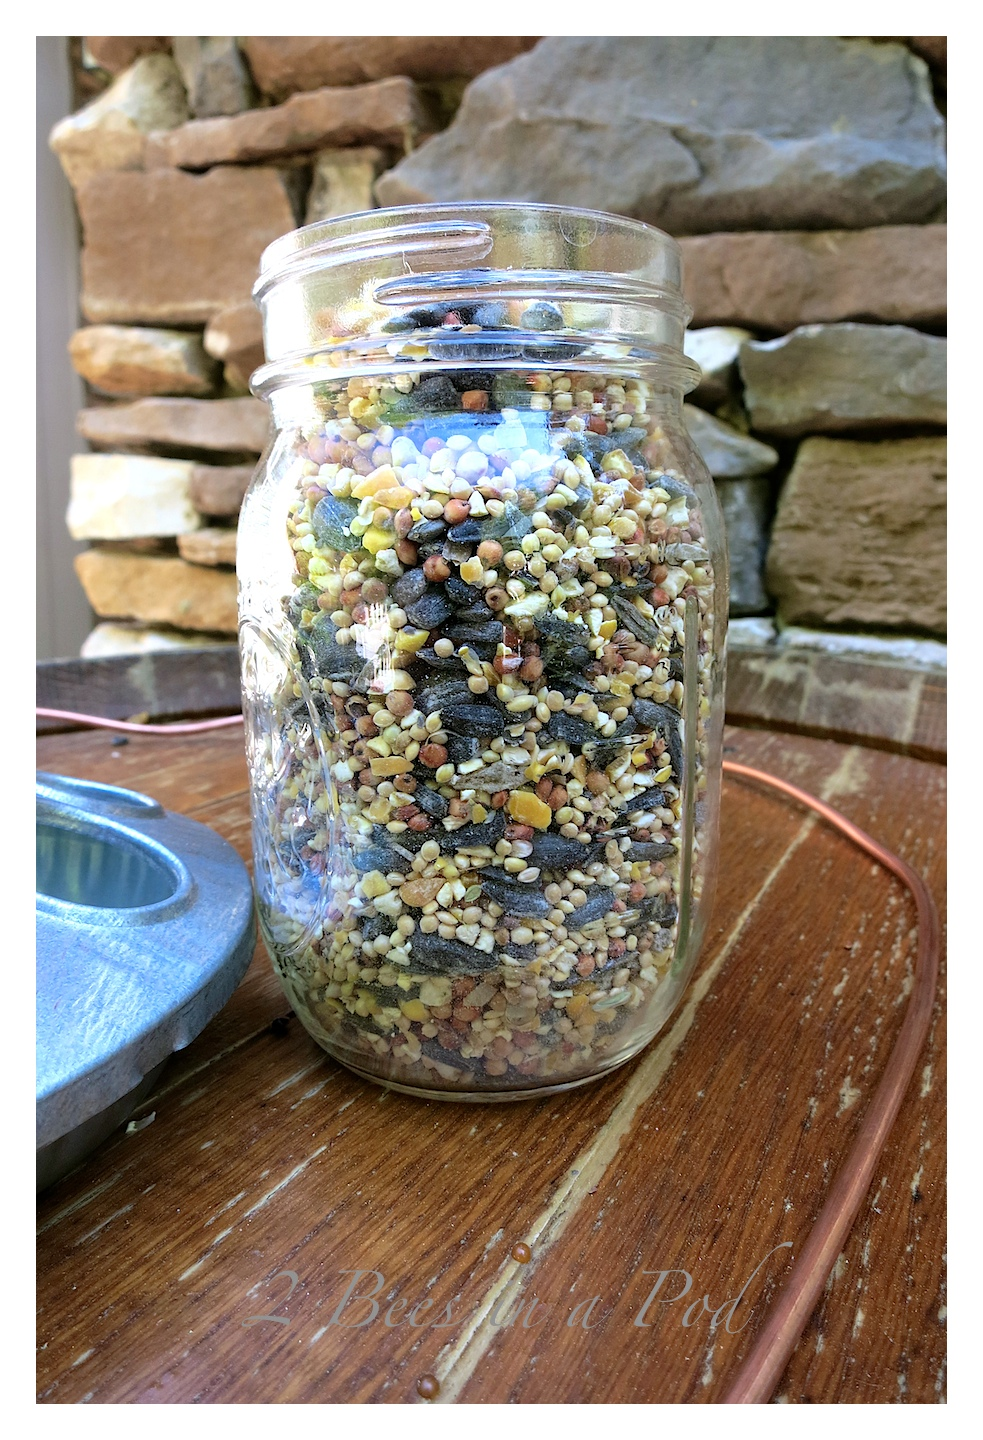 DIY birdfeeder that can be made in less than 3 minutes. All you need is a Mason jar, chicken feeder, 3 feet of 8 gauge wire and birdseed. Done :)